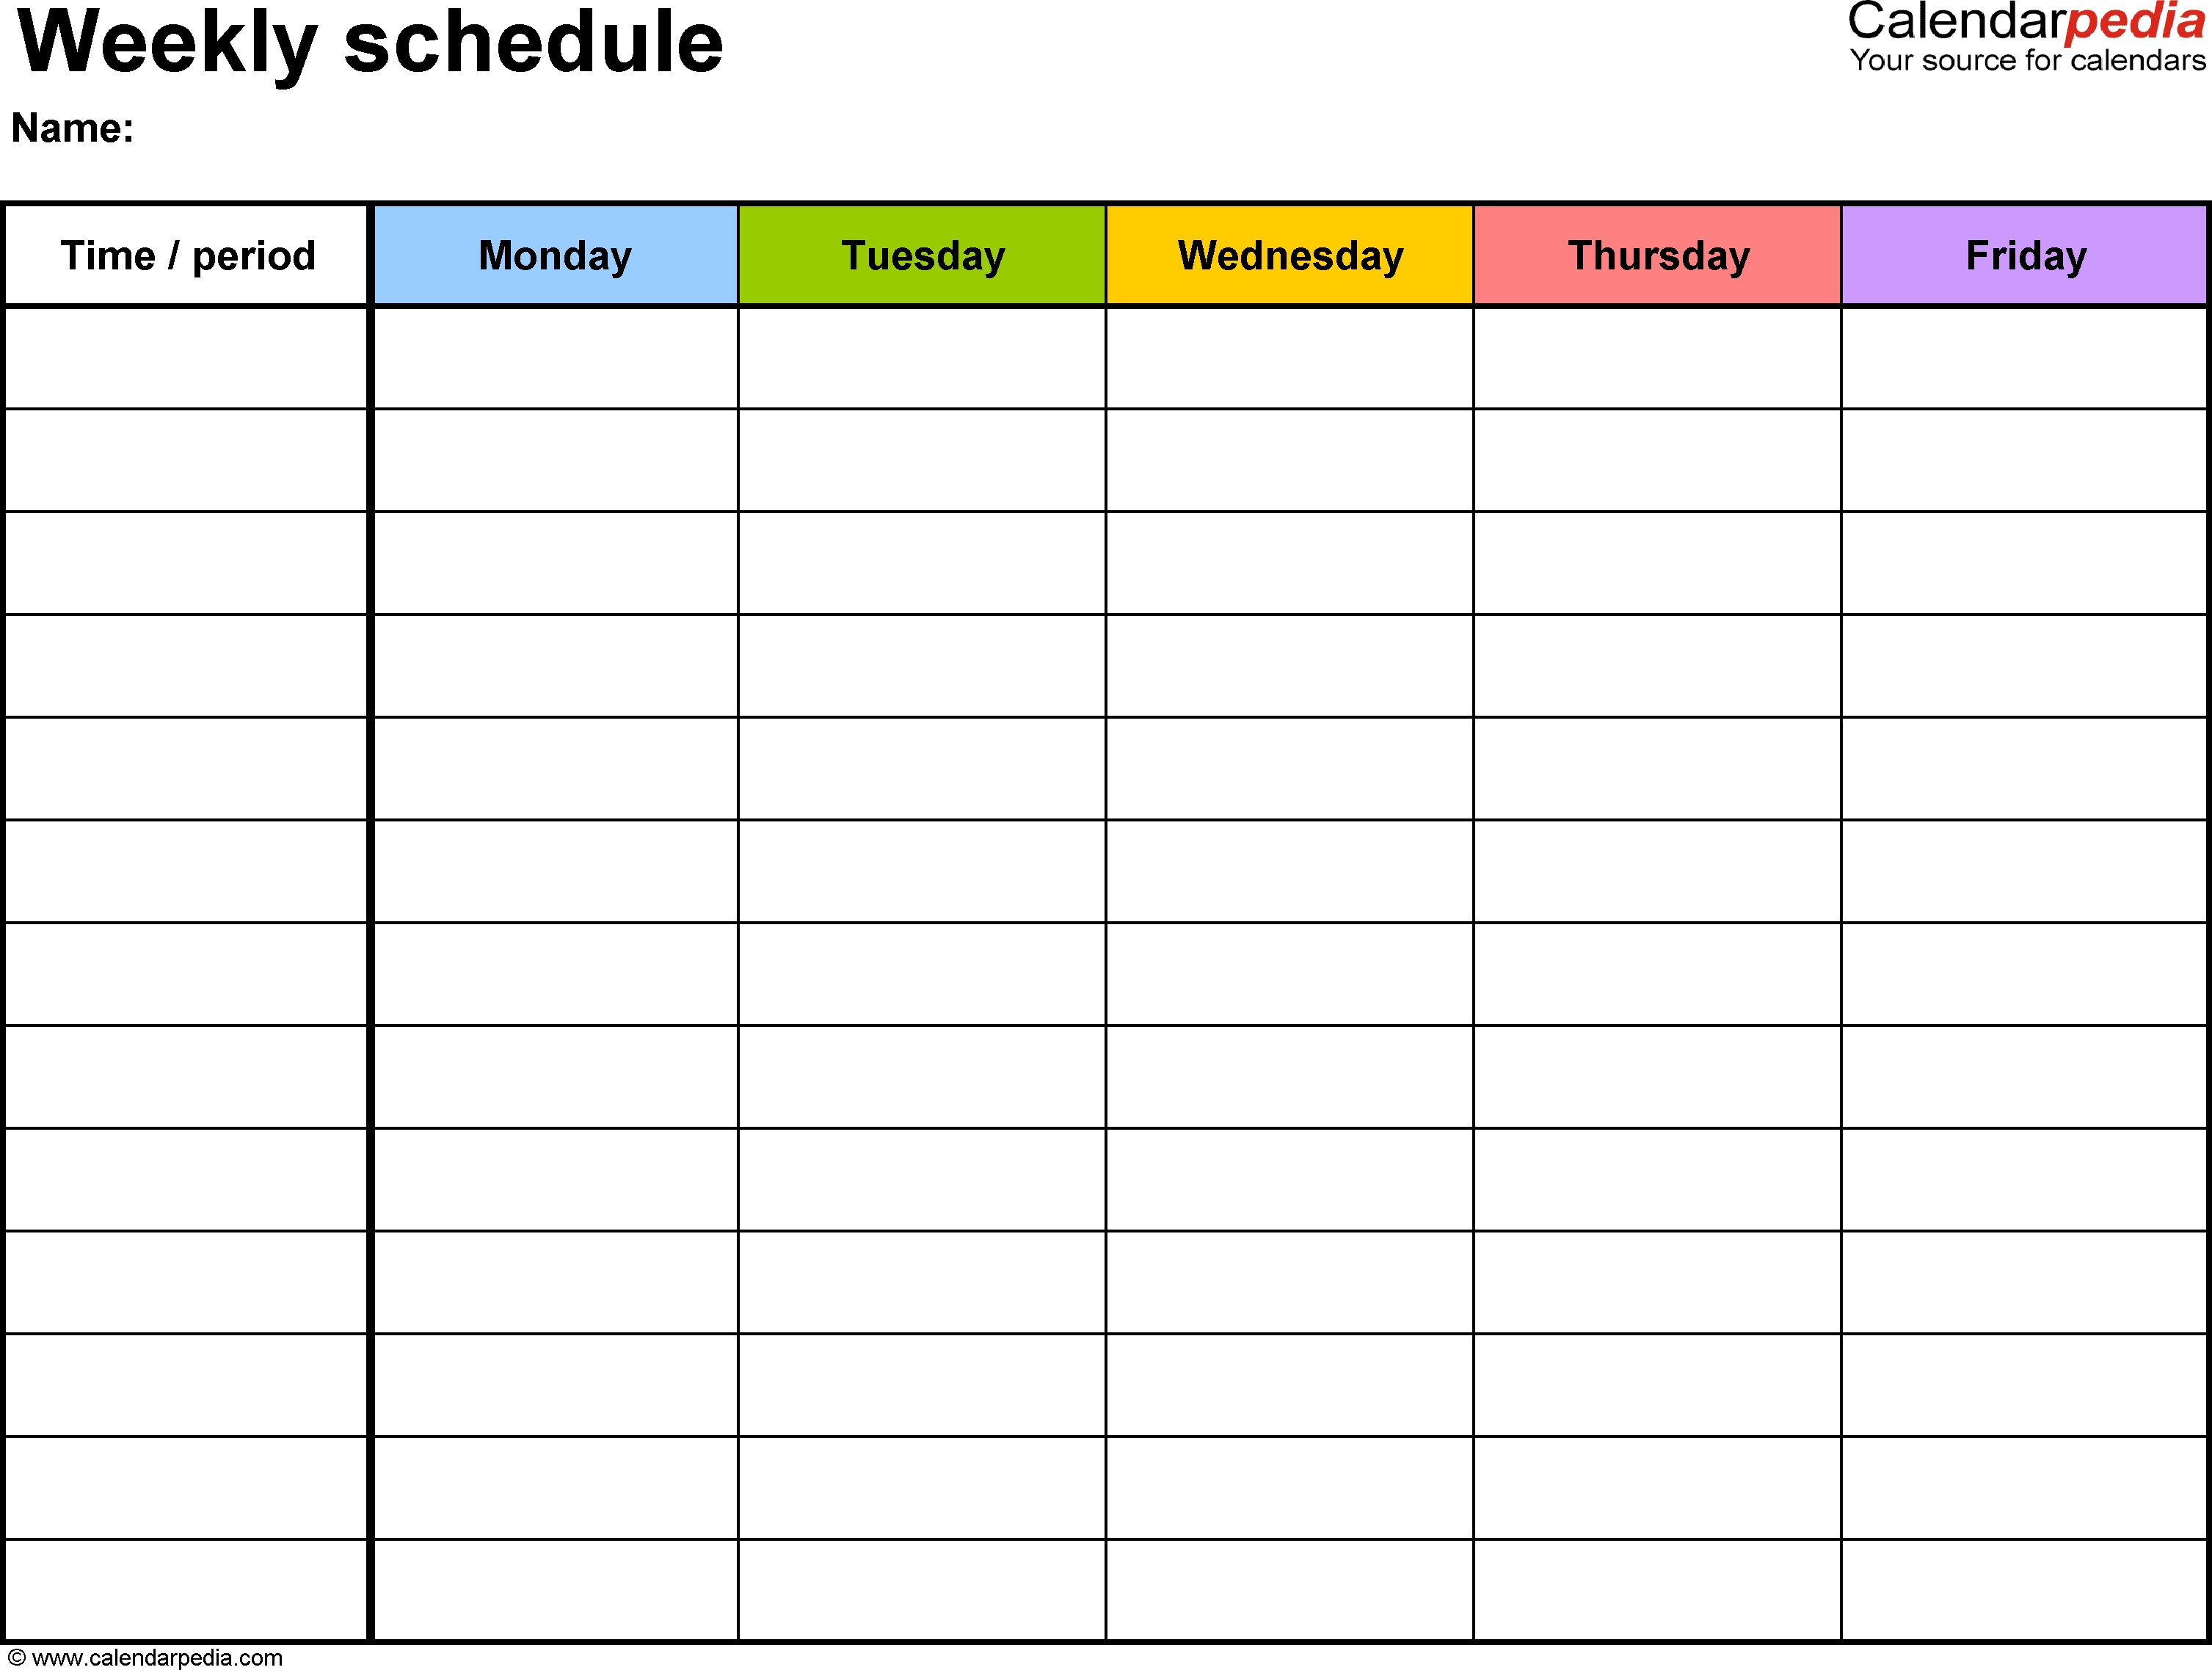 Free Weekly Schedule Templates For Word - 18 Templates-7 Week Calendar Template